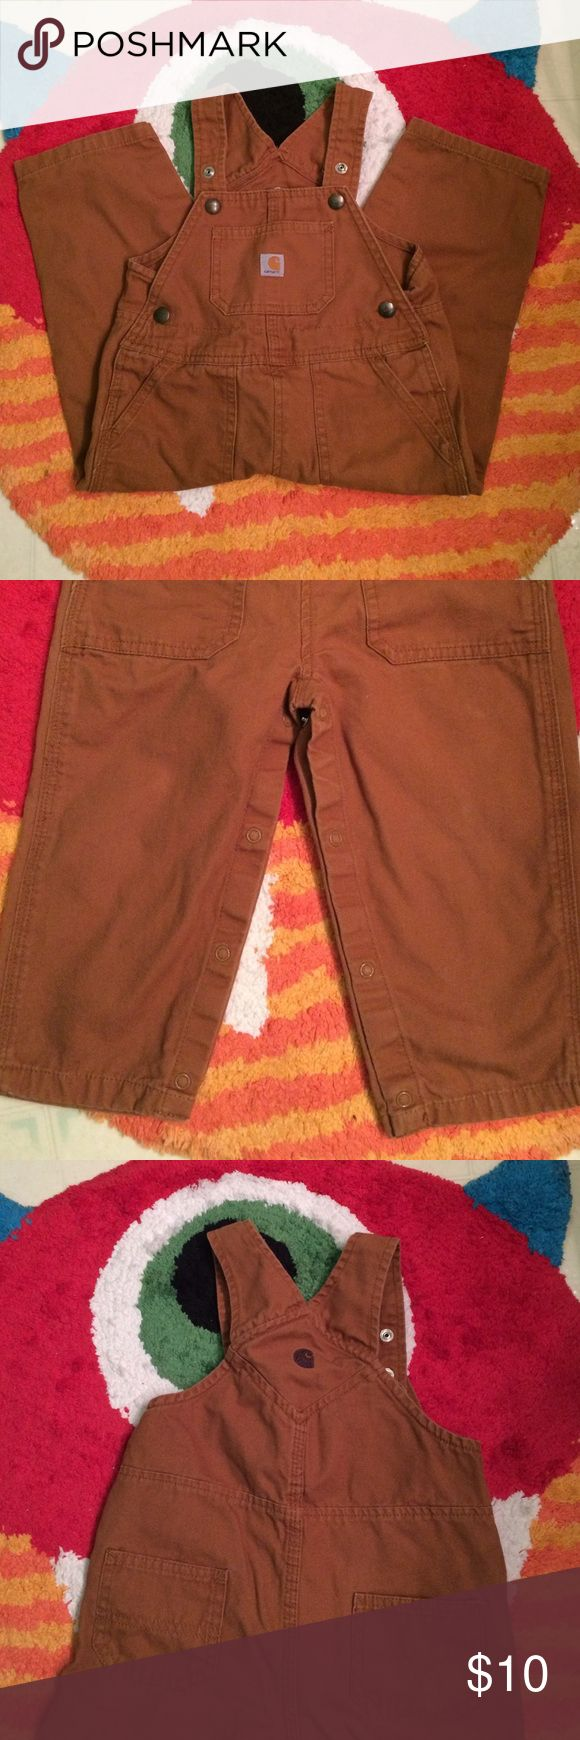 Carhartt bibs Gently worn, great condition. Looks like two spots with slight discoloration. Might come out in wash. Super cute bibs! Carhartt Bottoms Overalls